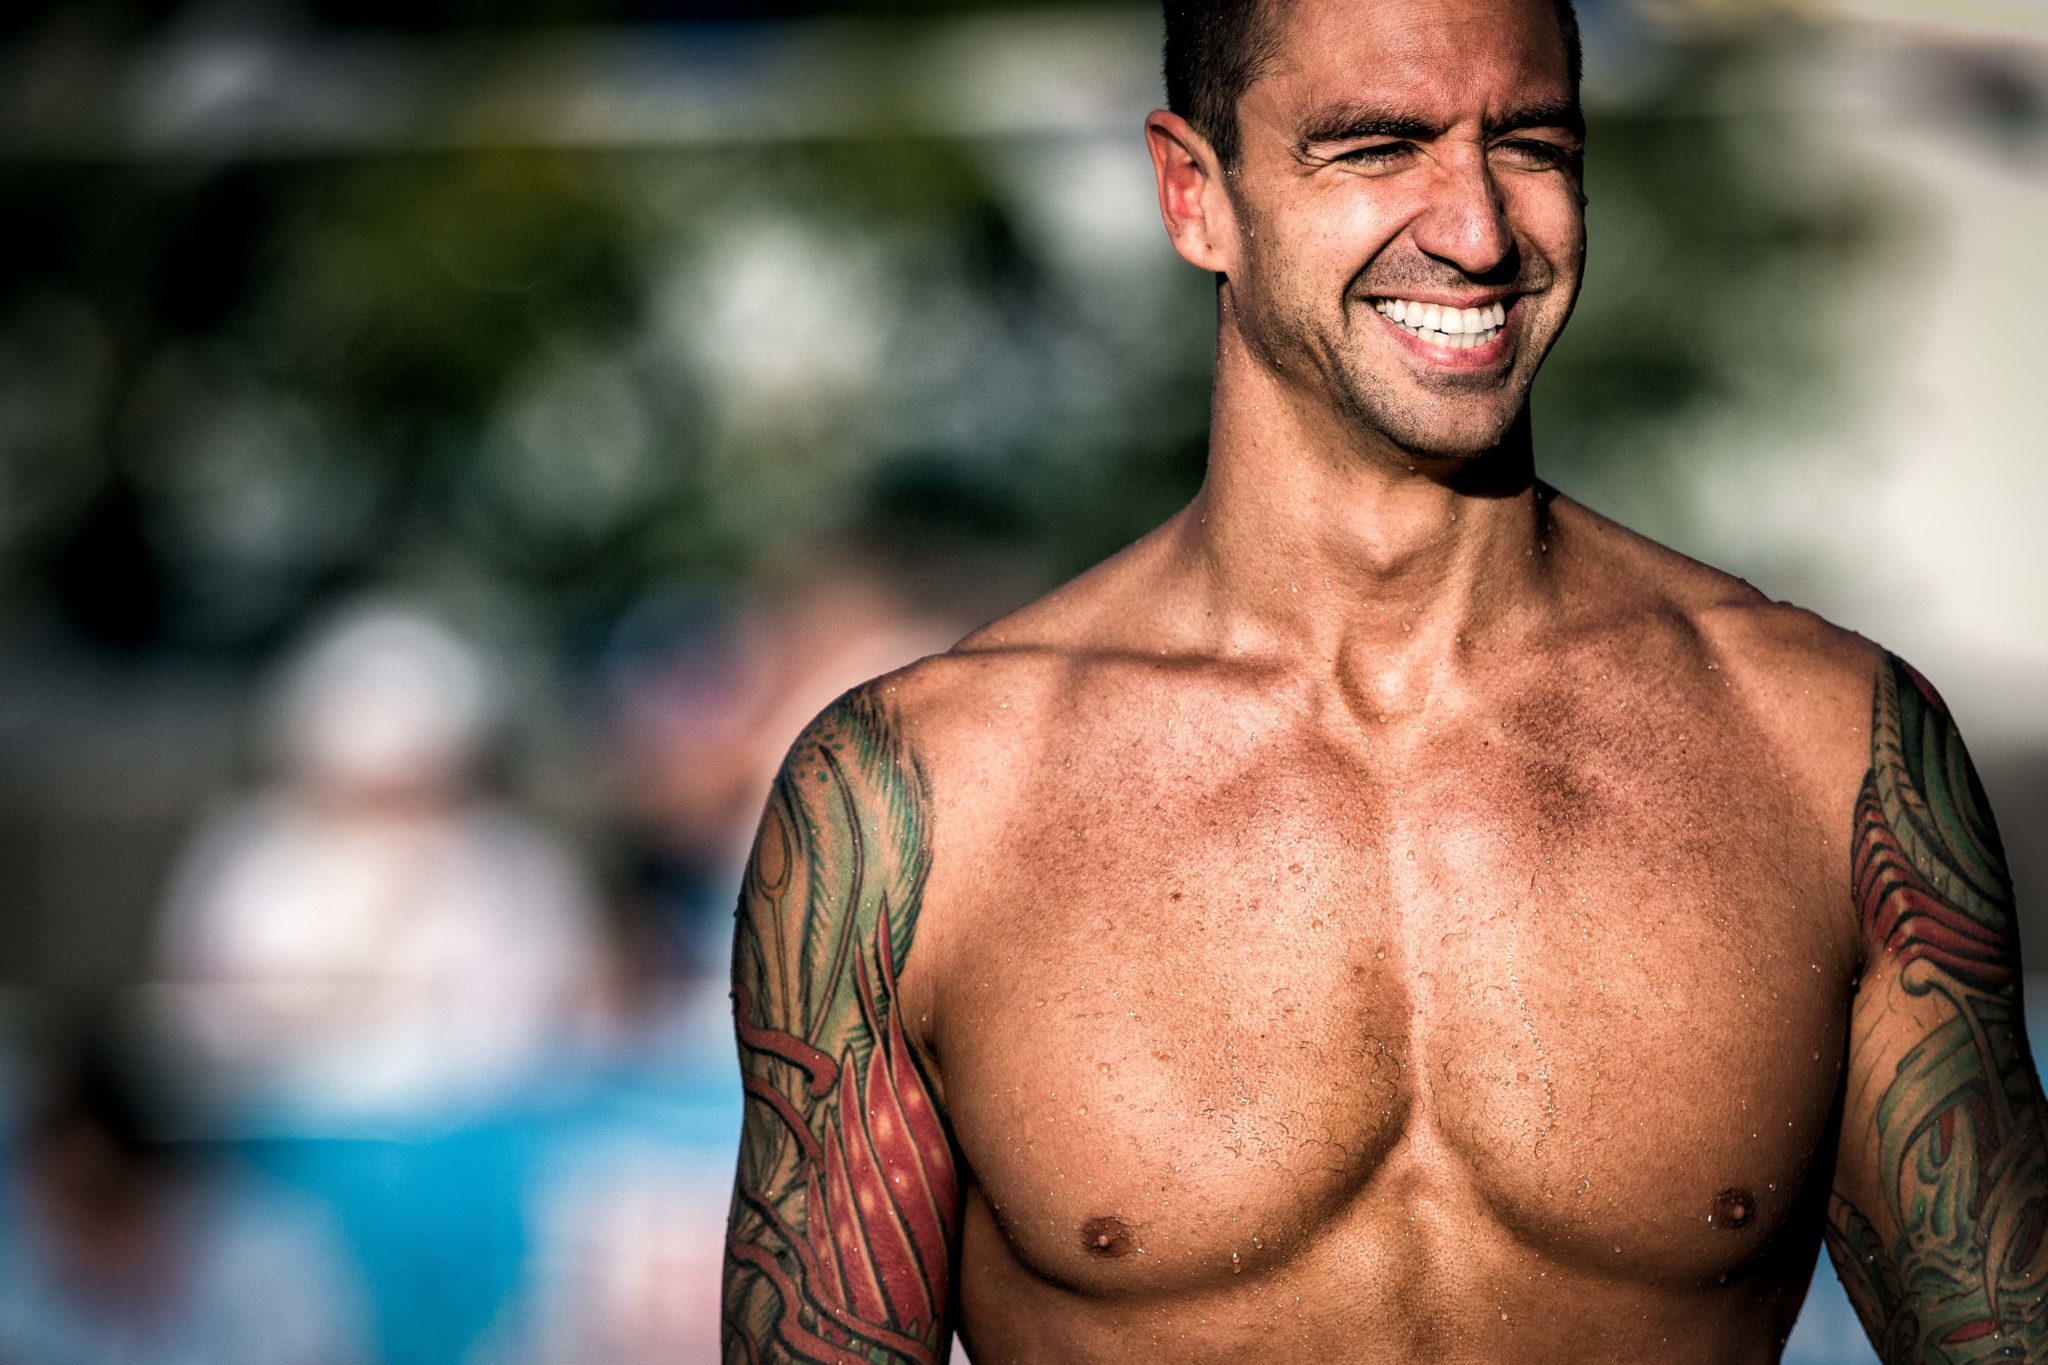 Anthony Ervin joines team USA for 20TH Maccabiah